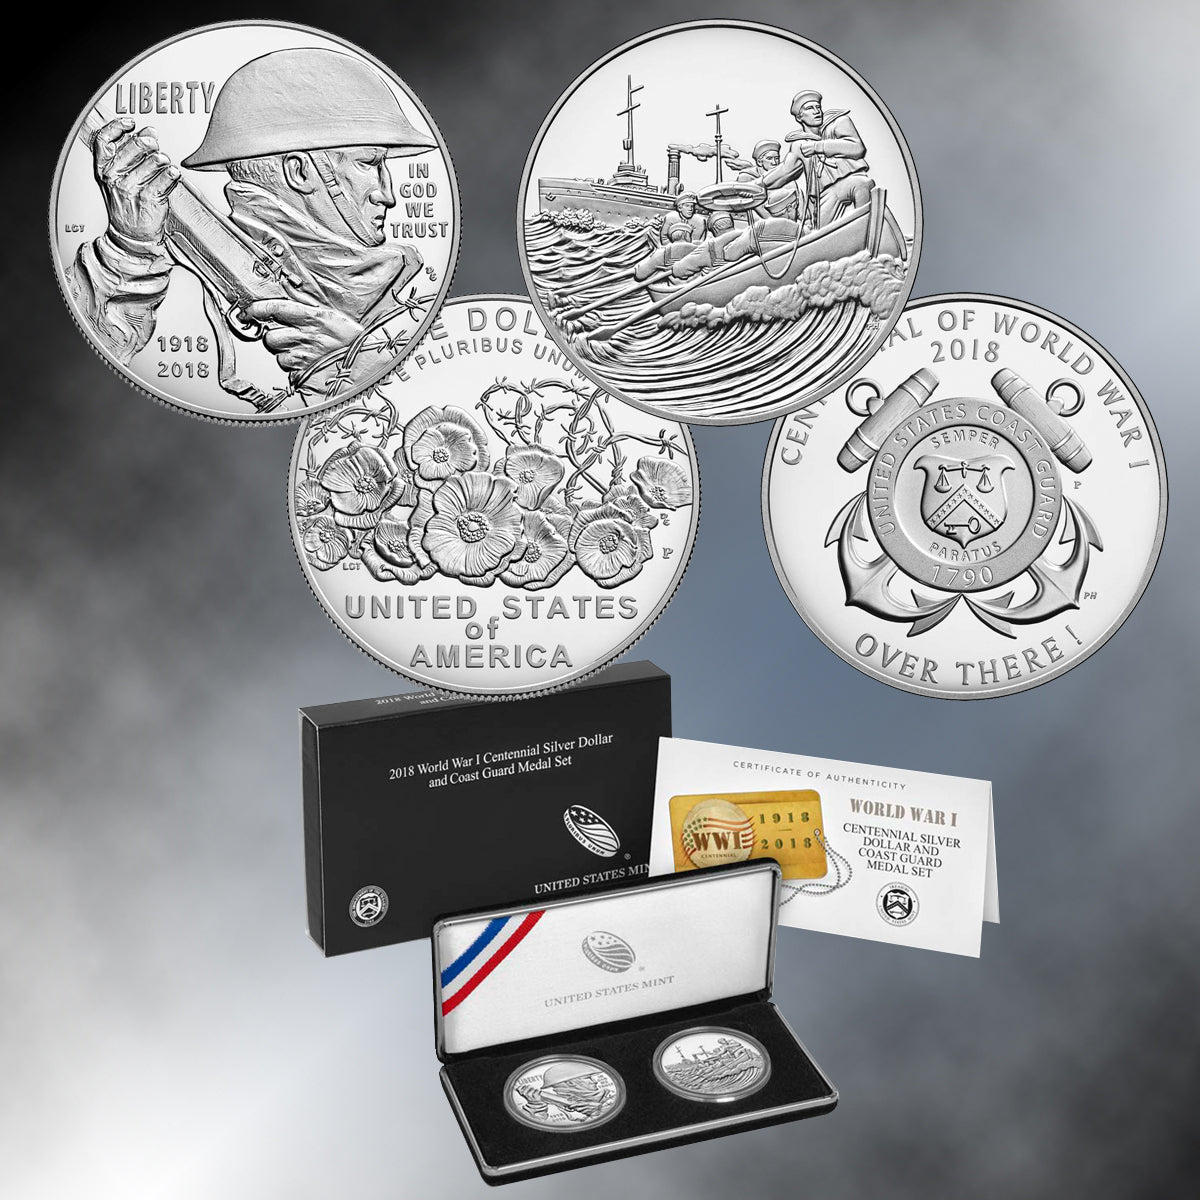 2018 WWI Centennial Silver Dollar and Medal Set - COAST GUARD